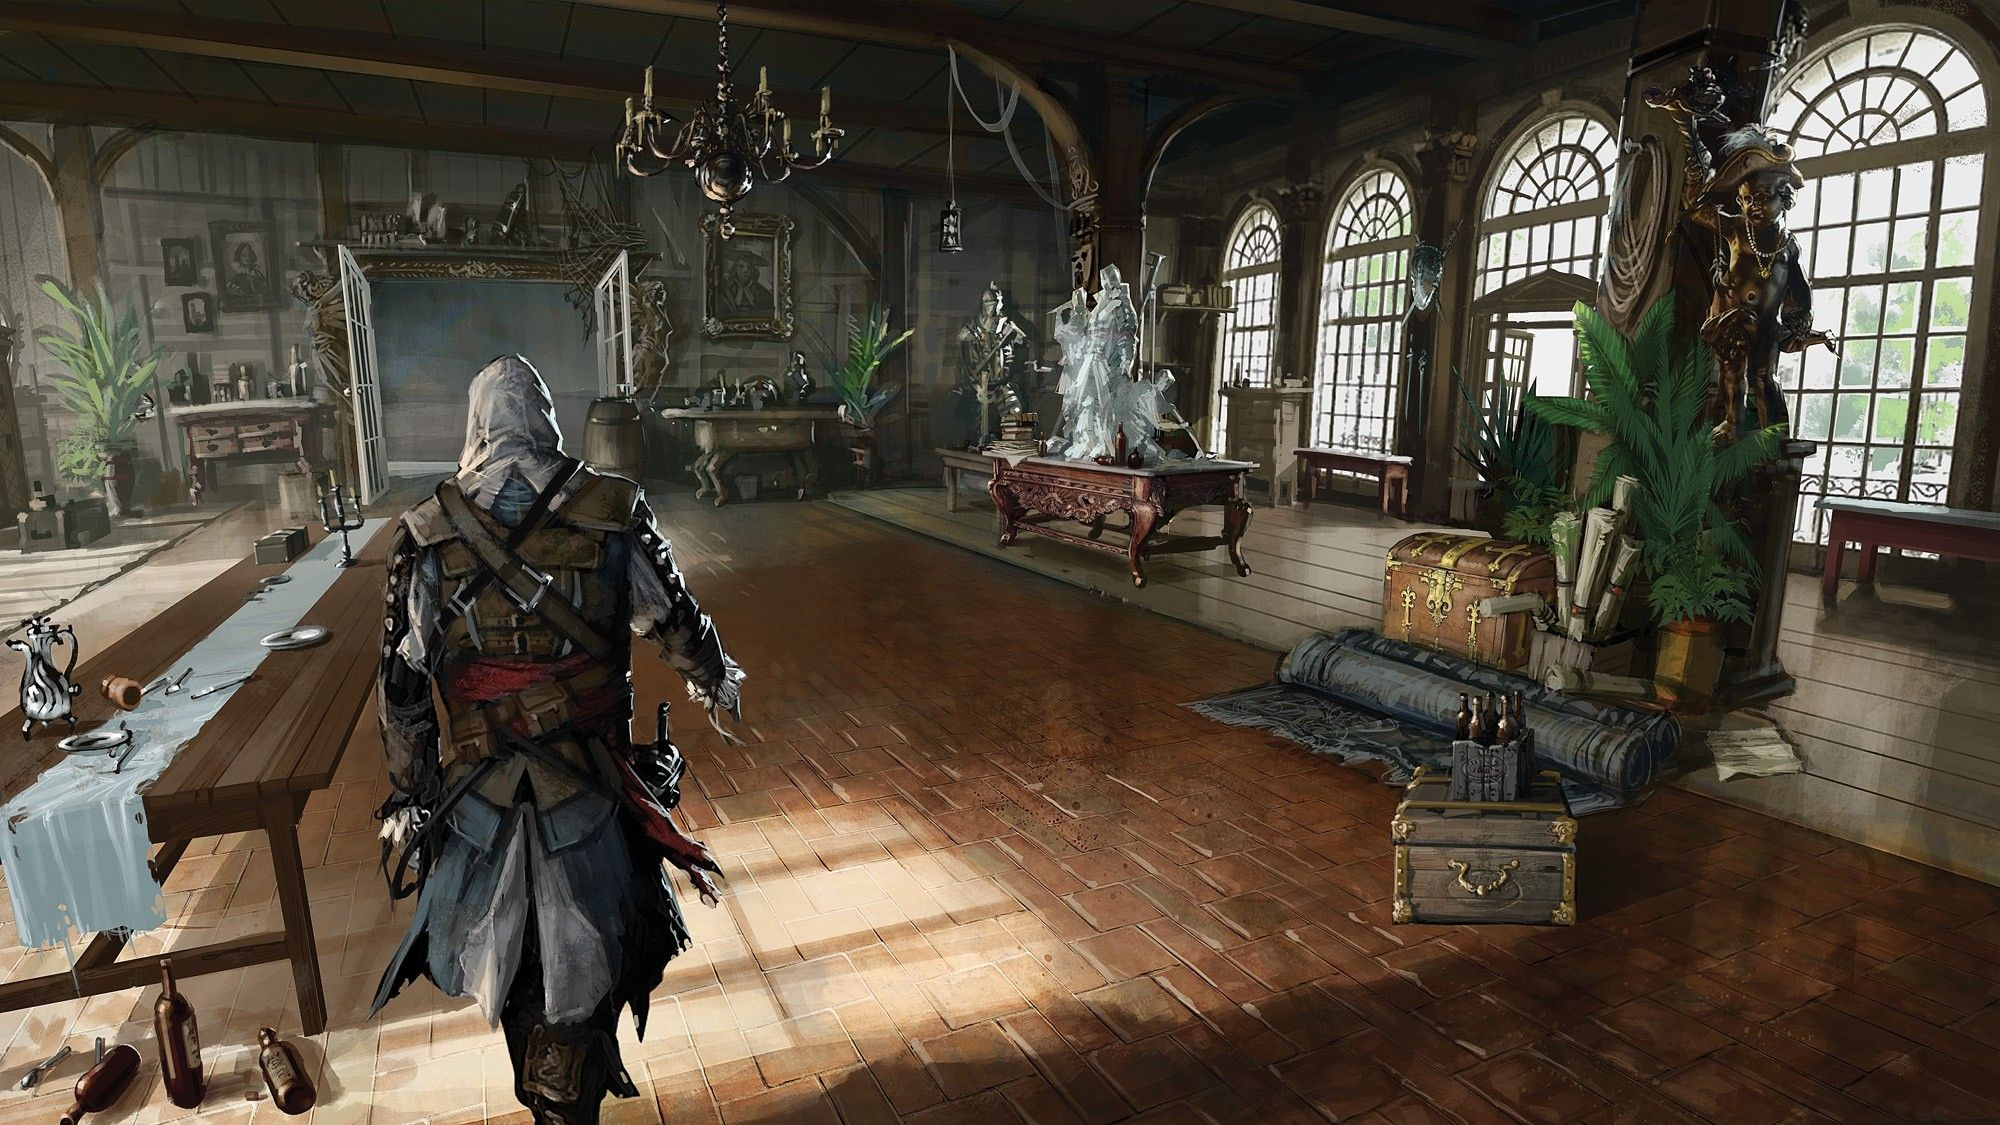 Assassin S Creed Iv Black Flag Concept Art Assassins Creed Black Flag Assassins Creed 4 All Assassin S Creed